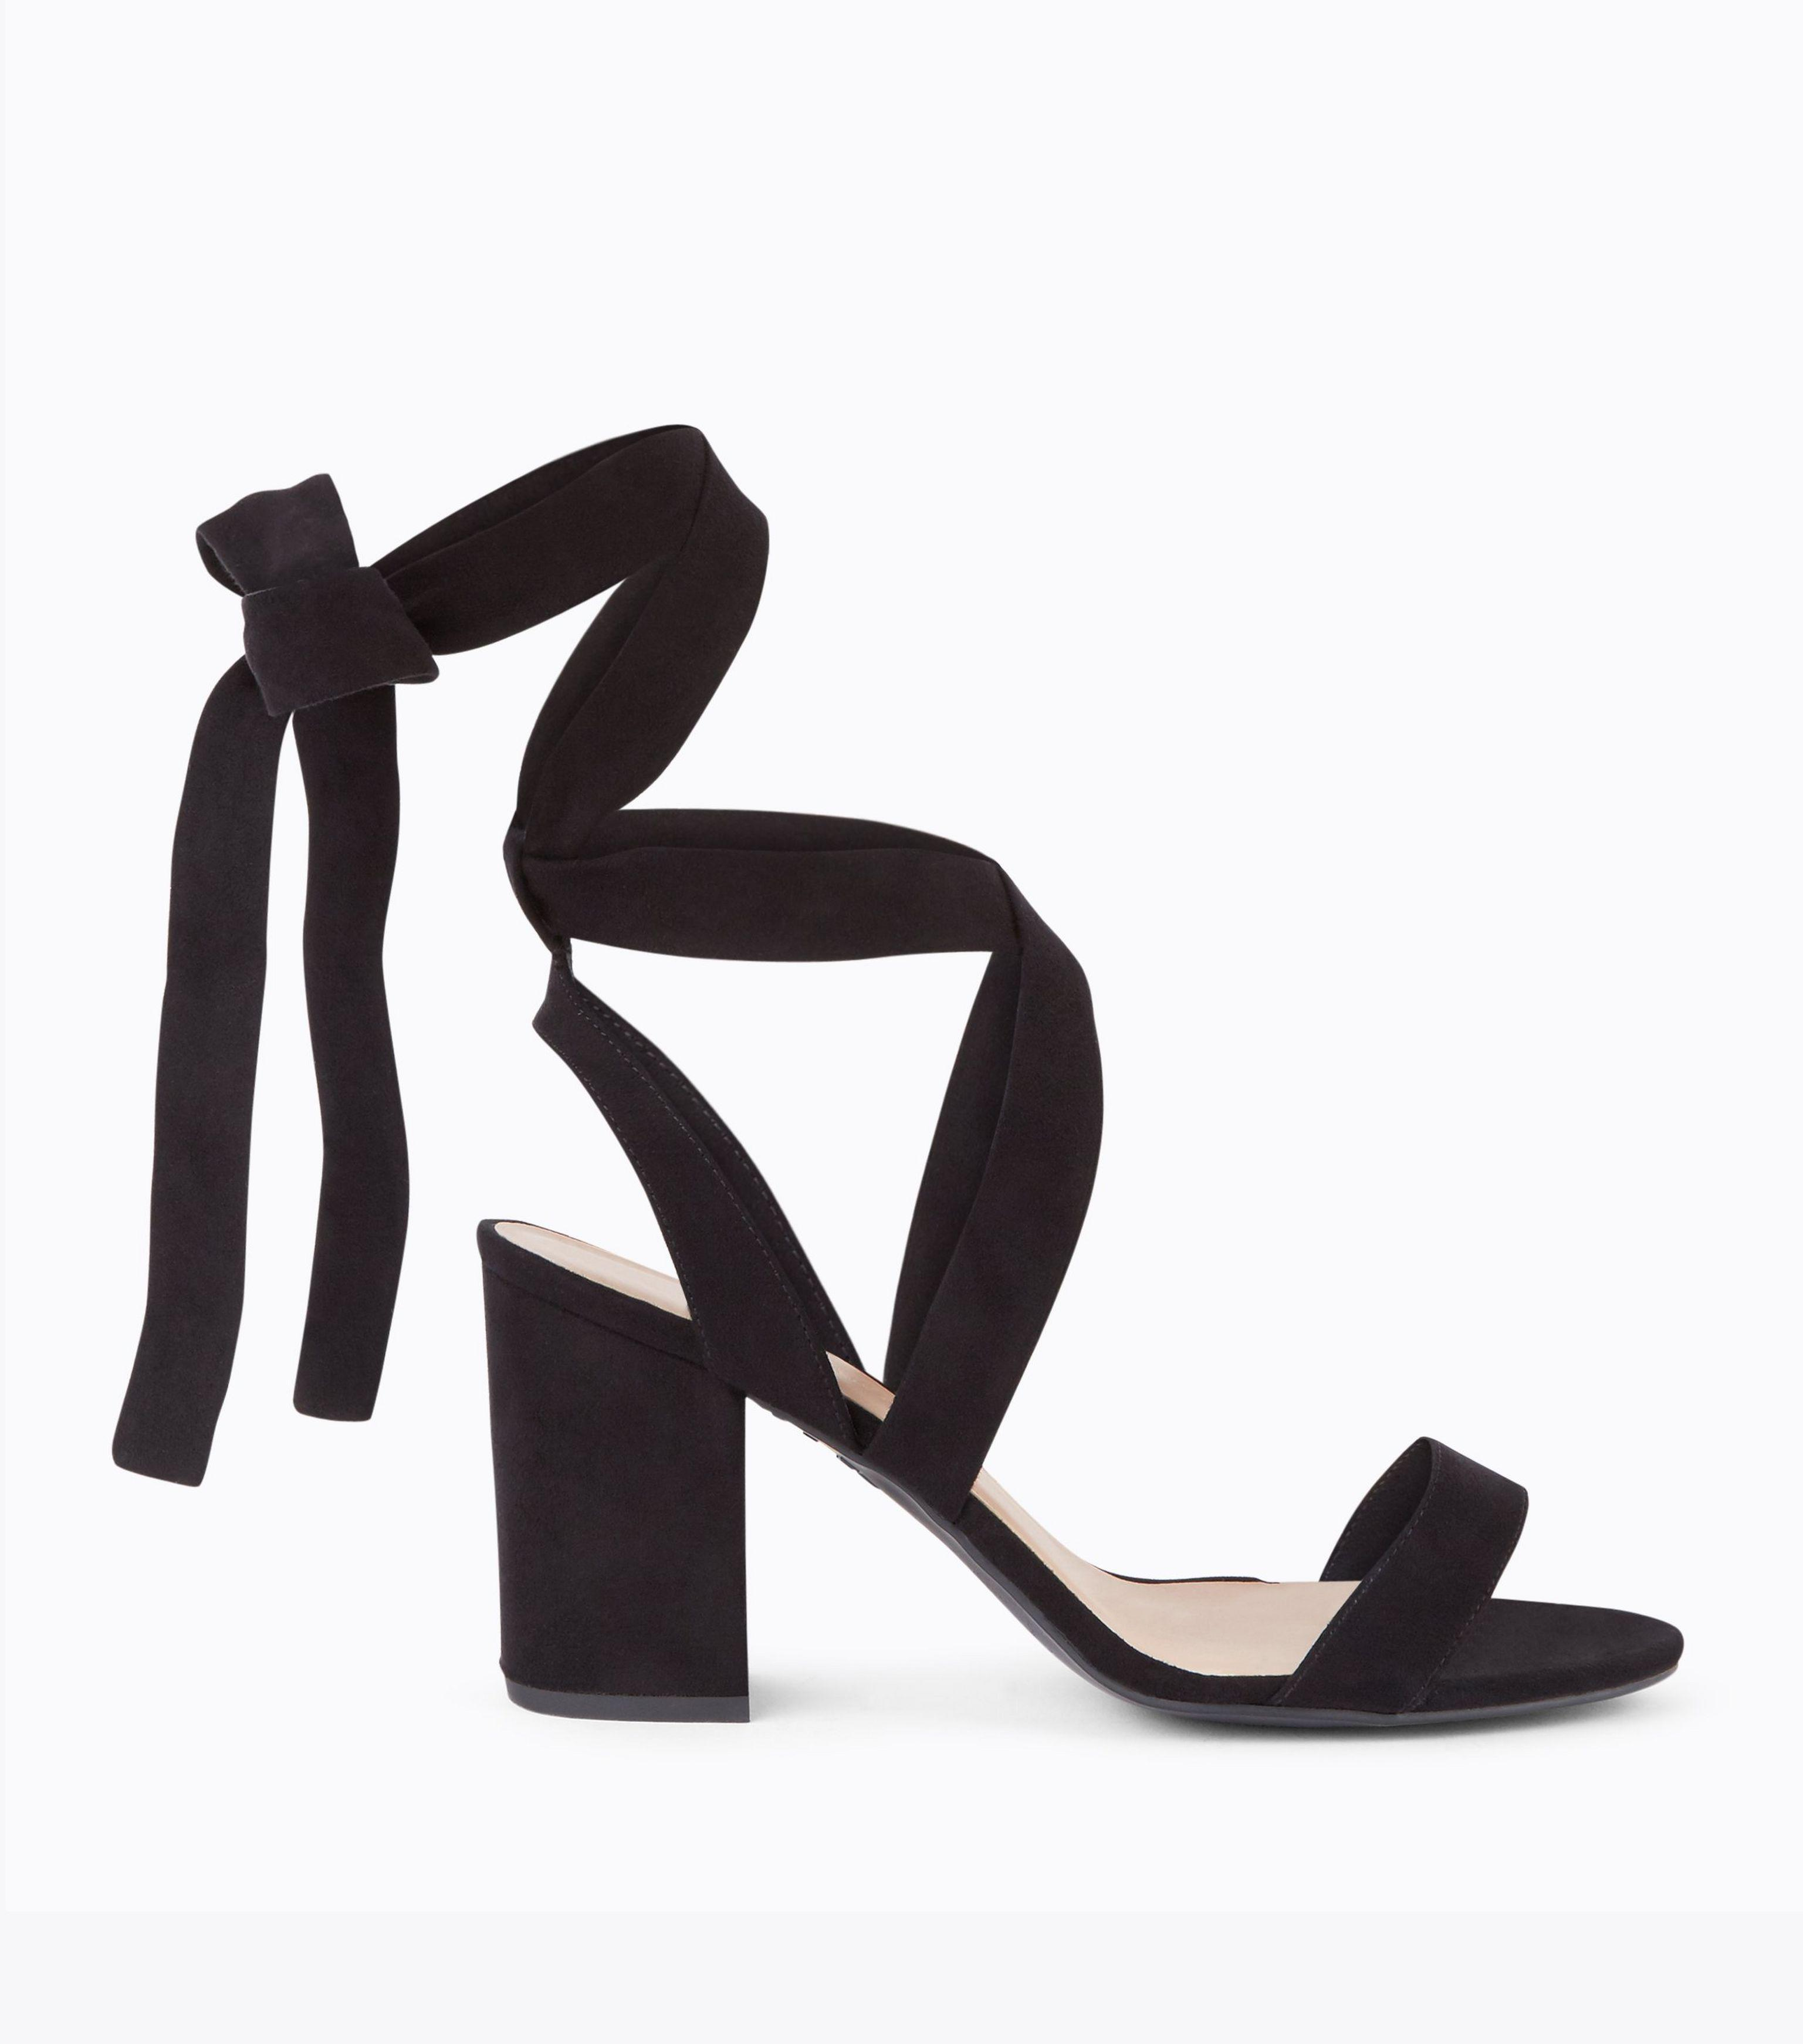 1f65f9aa576f New Look Wide Fit Black Suedette Ankle Tie Heeled Sandals in Black ...